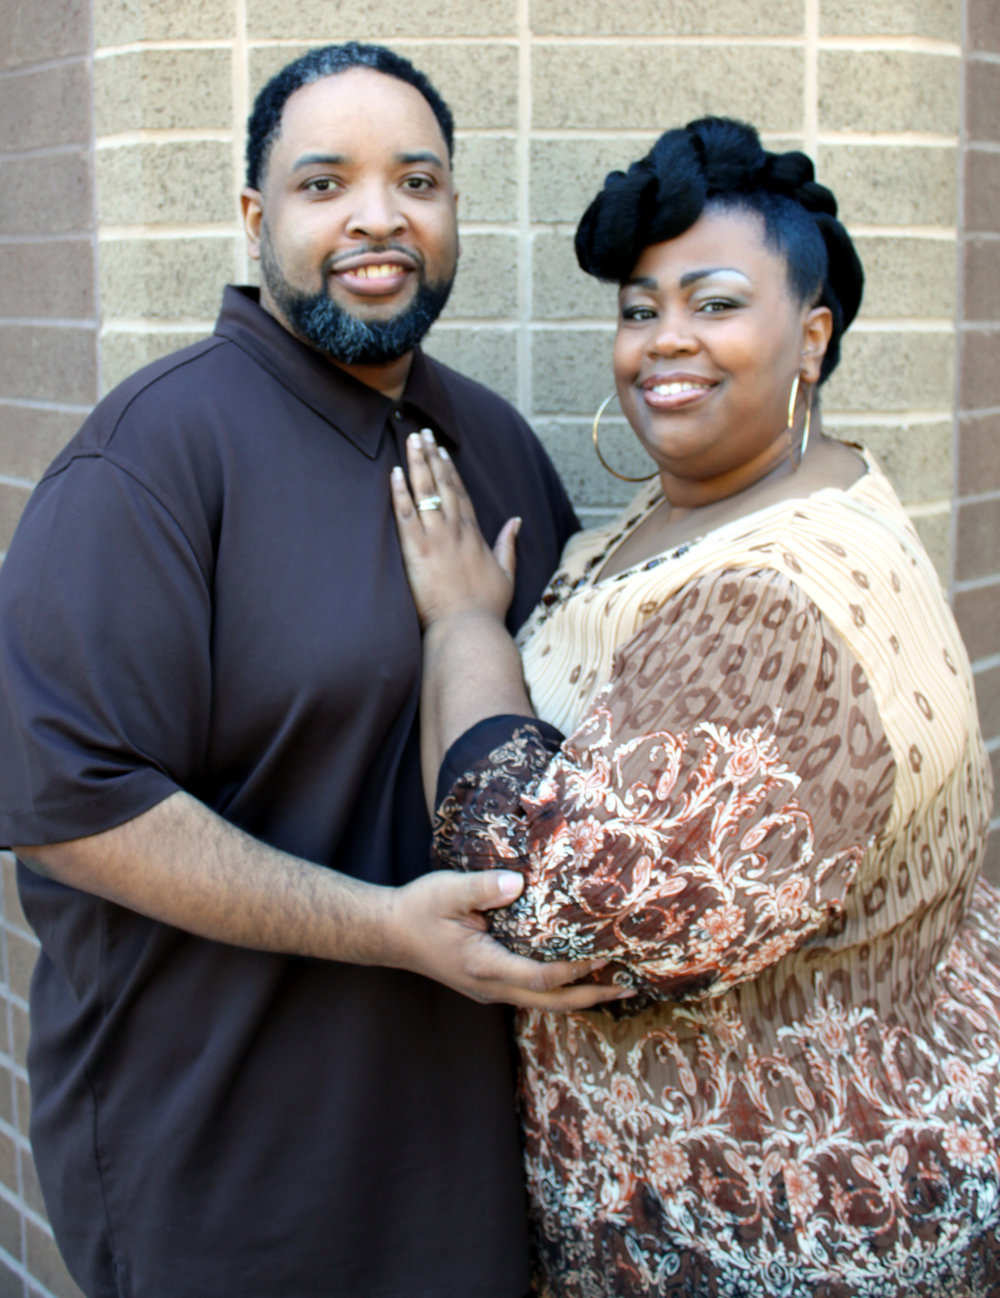 Alfred & Elicia Smith   Pastor Elicia (Lee Lee) is the Worship Pastor at Designer's Way. Originally from Seattle, WA, she holds a Bachelor's Degree in Music Technology with a concentration in Vocal Performance from Bethune-Cookman University, and a Master of Science in Leadership with a concentration in Leader Development from Walden University. Alfred is one of our Elders and serves in our Audio Visual Ministry. Originally from Washington D.C. he holds a Bachelor's Degree in Recording Arts from The International Academy of Design and Technology.